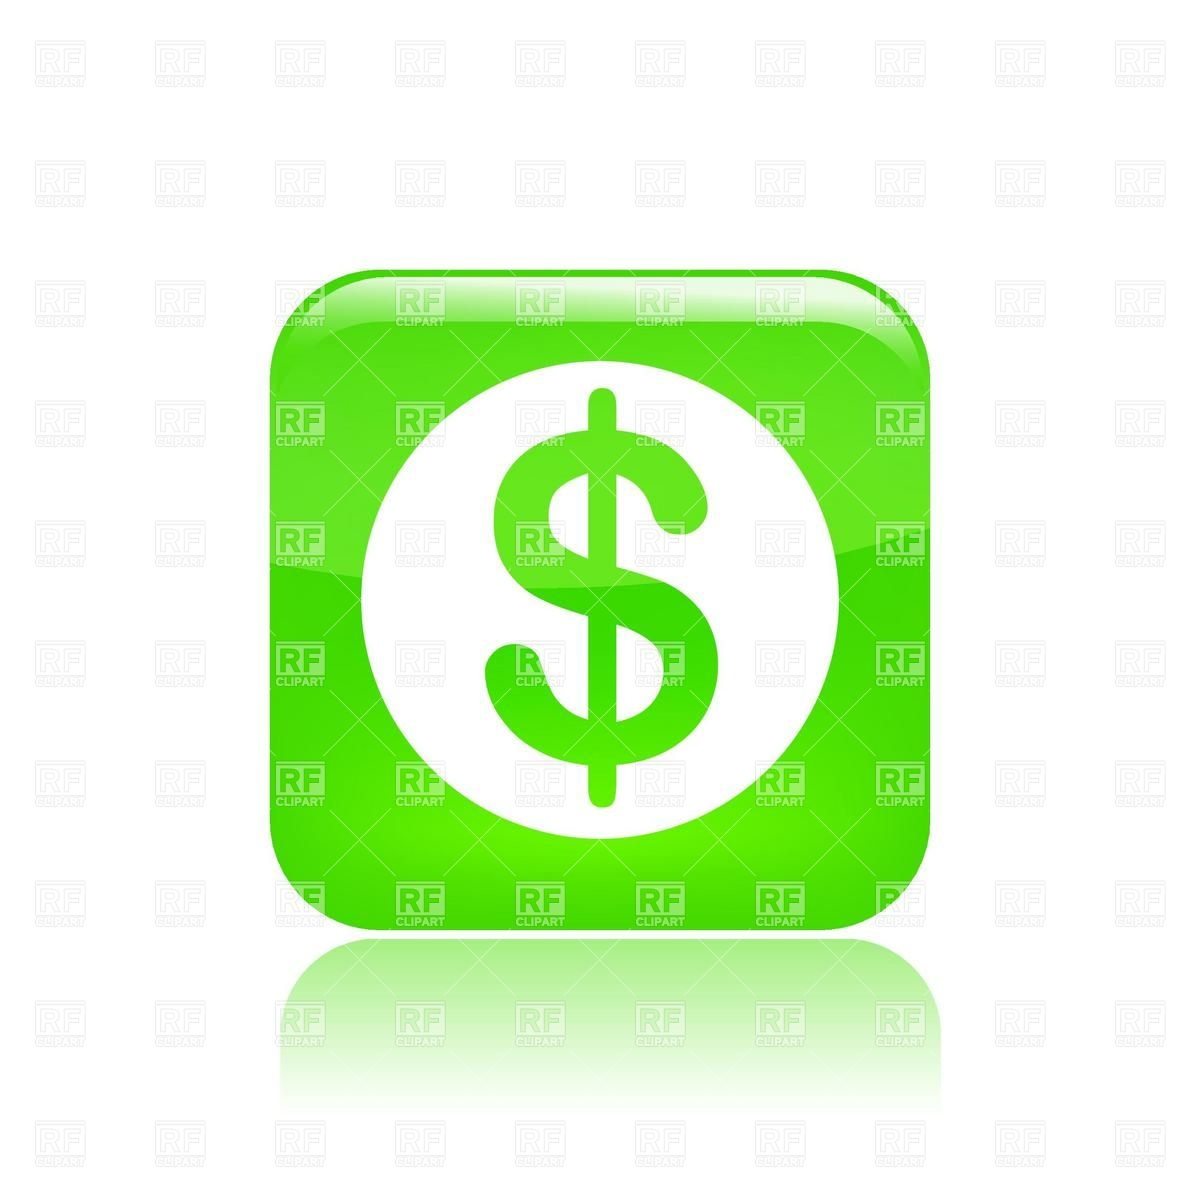 green%20dollar%20sign%20clipart